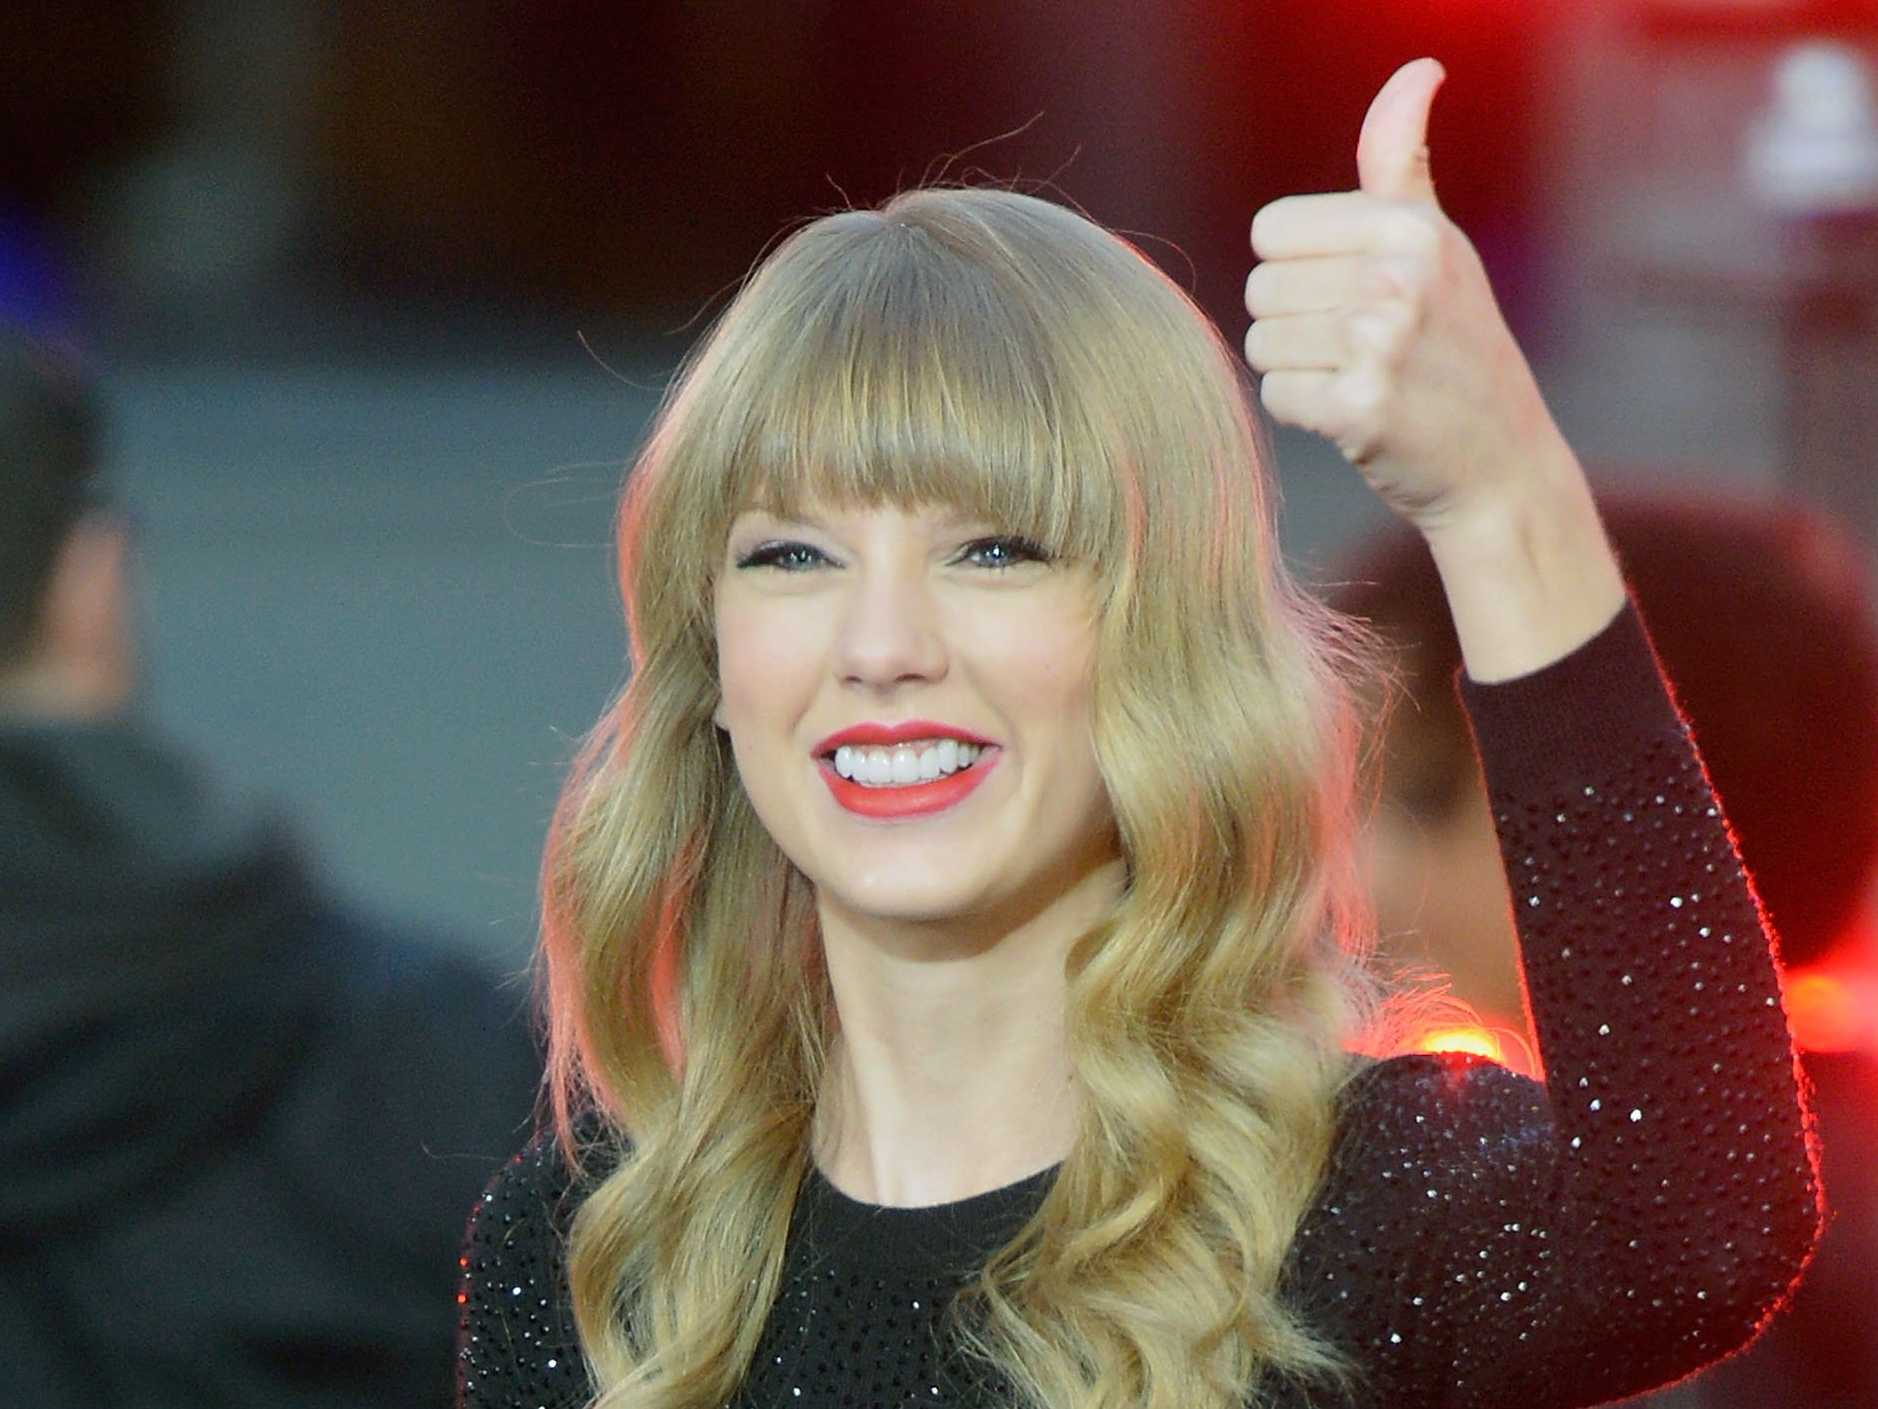 http://rouzegar.com/wp-content/uploads/2014/08/how-taylor-swift-conquered-the-music-world-by-age-22.jpg